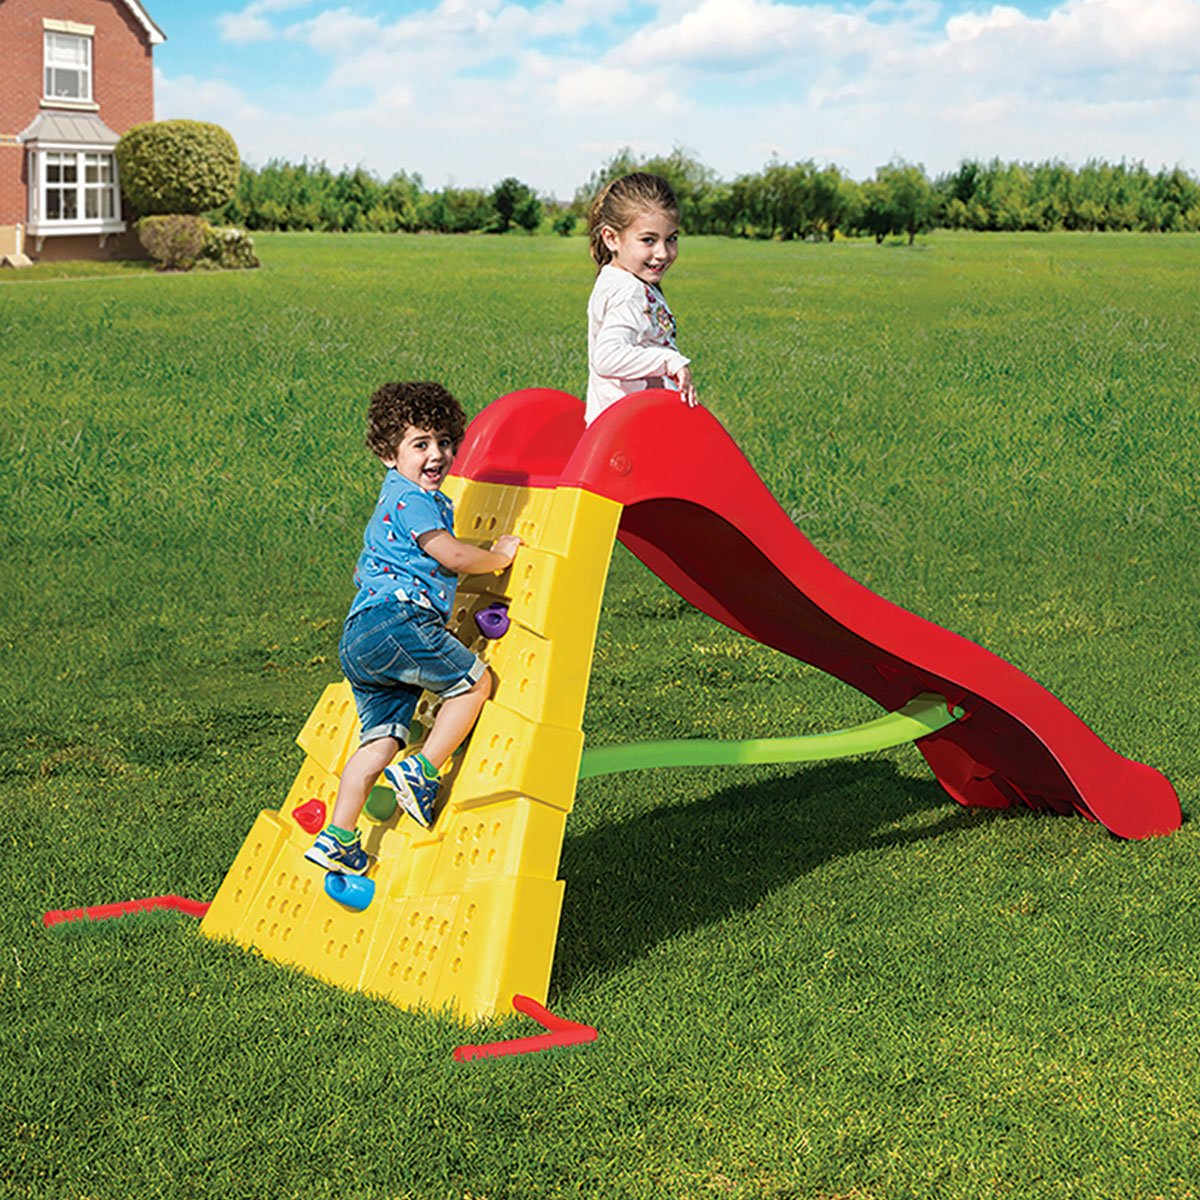 Starplast Starplay Climbing Wall and Slide